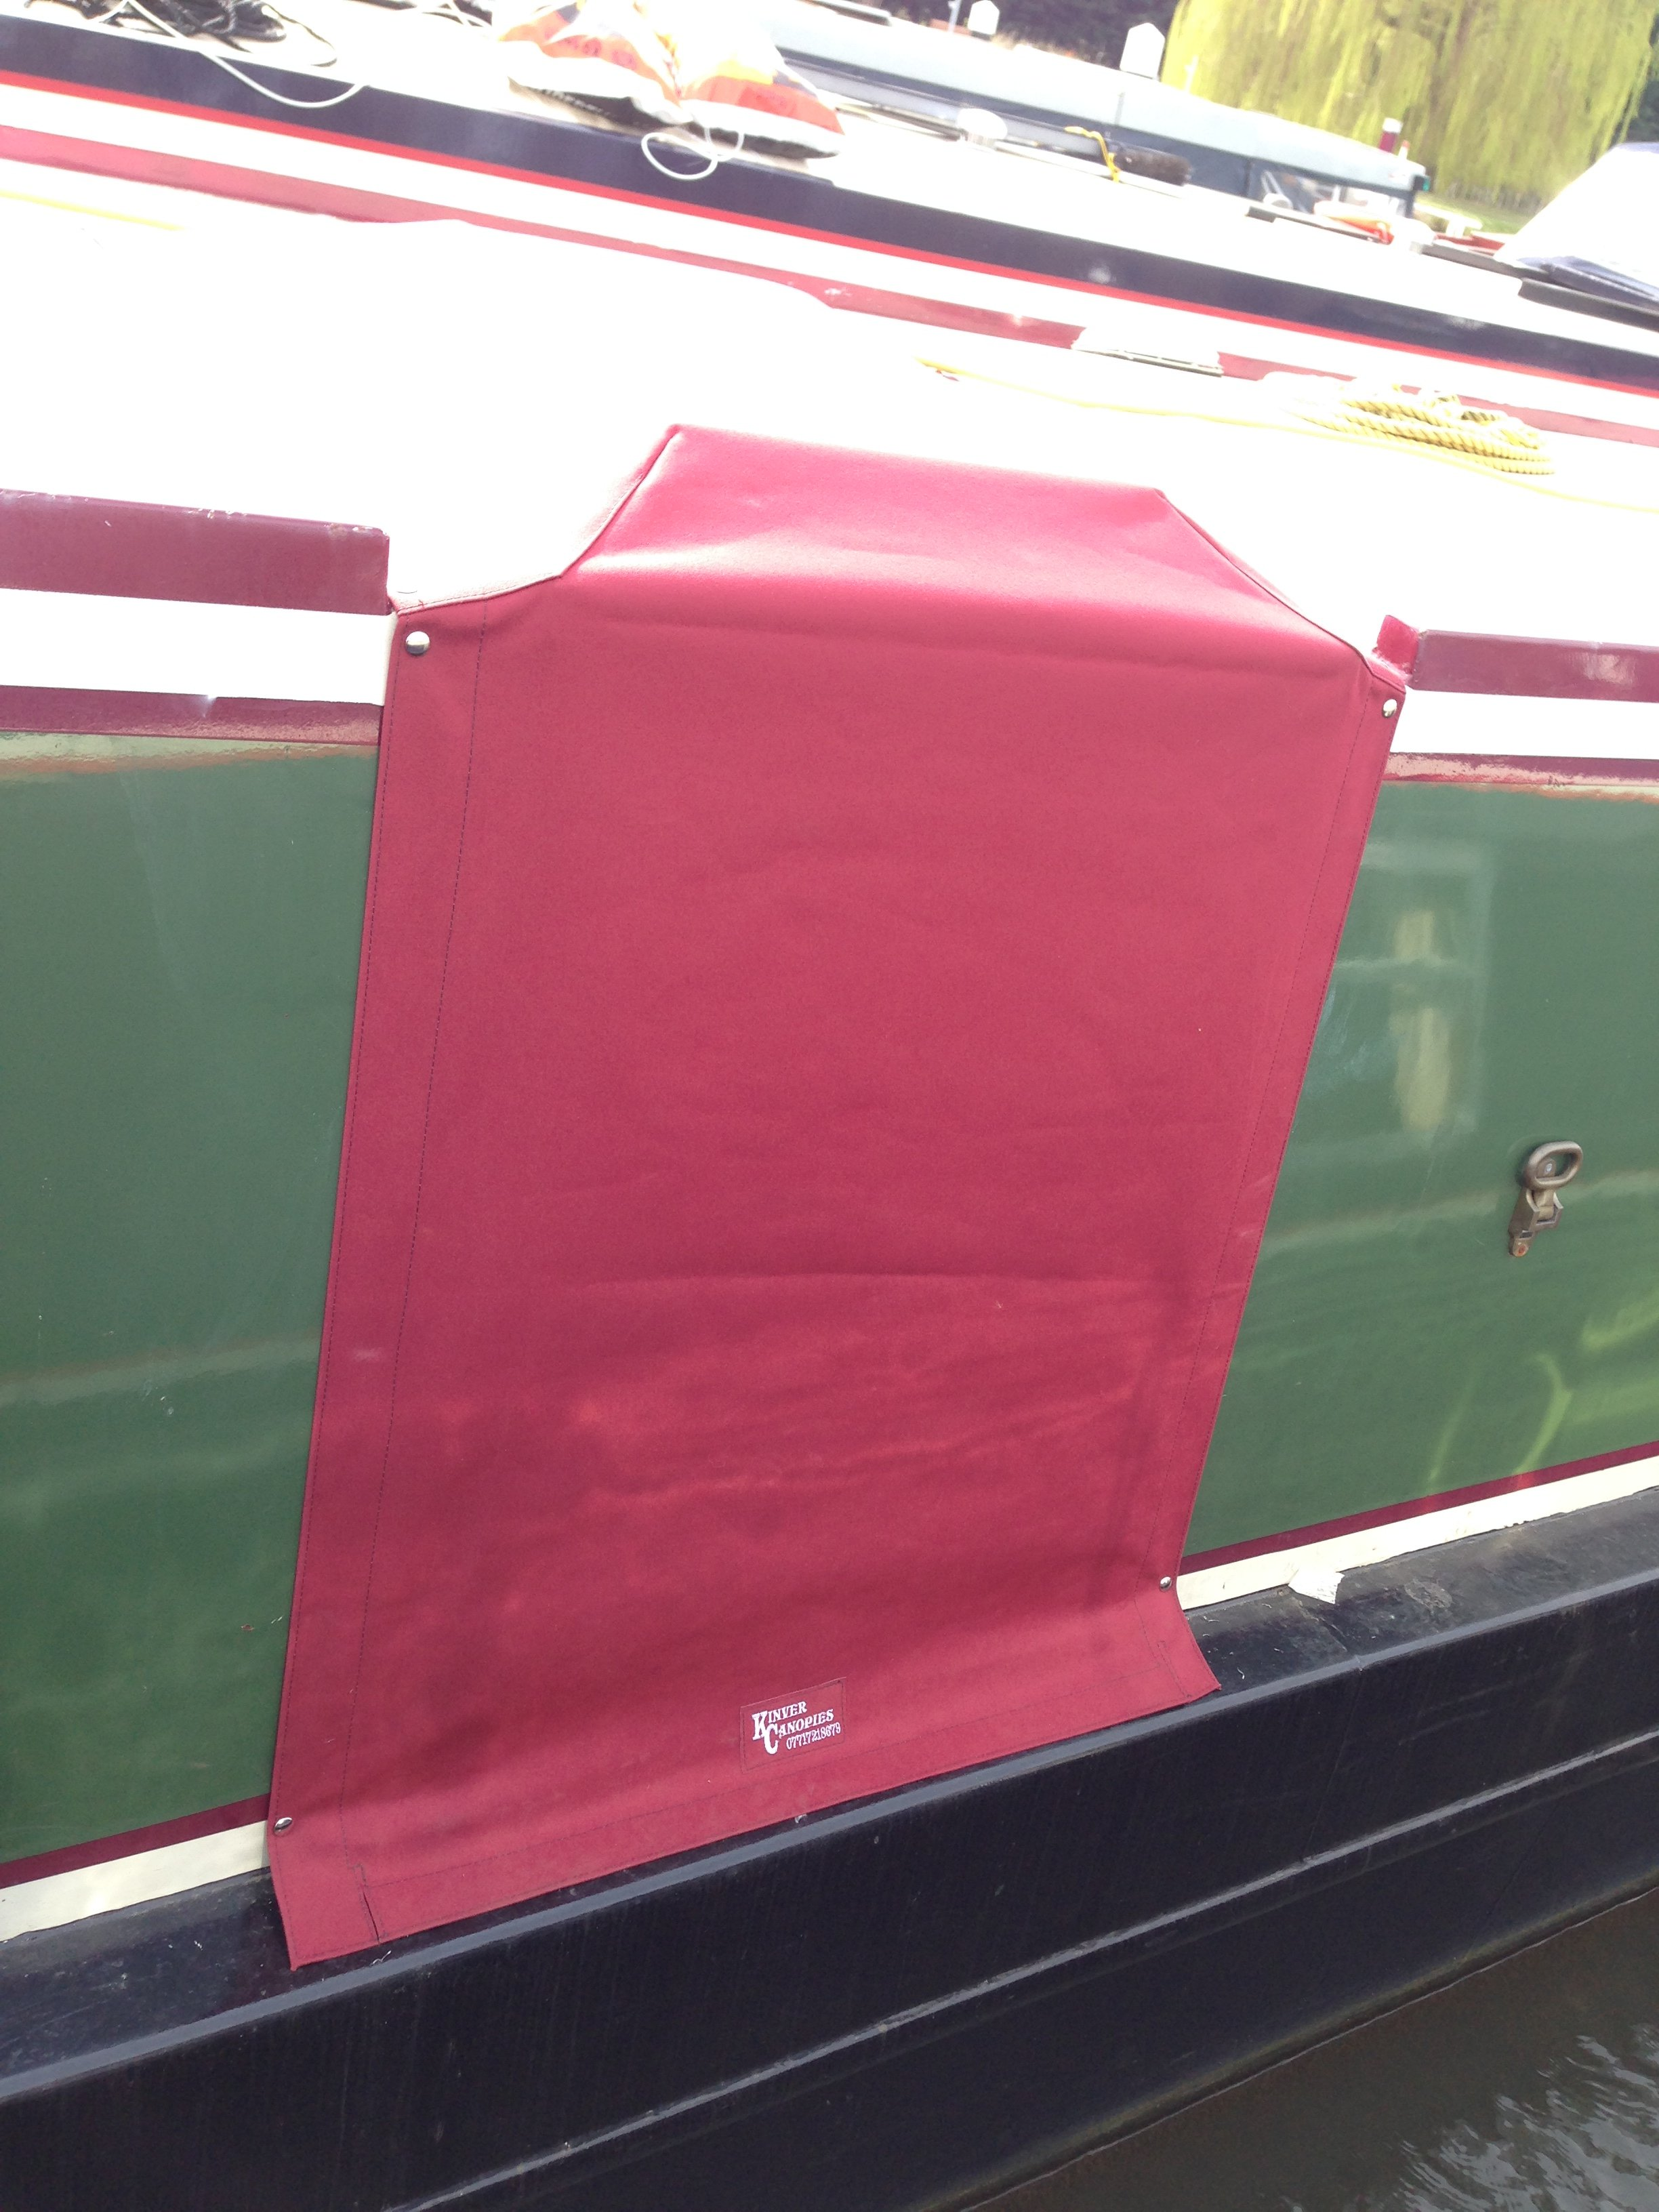 Narrowboat hatch and door cover